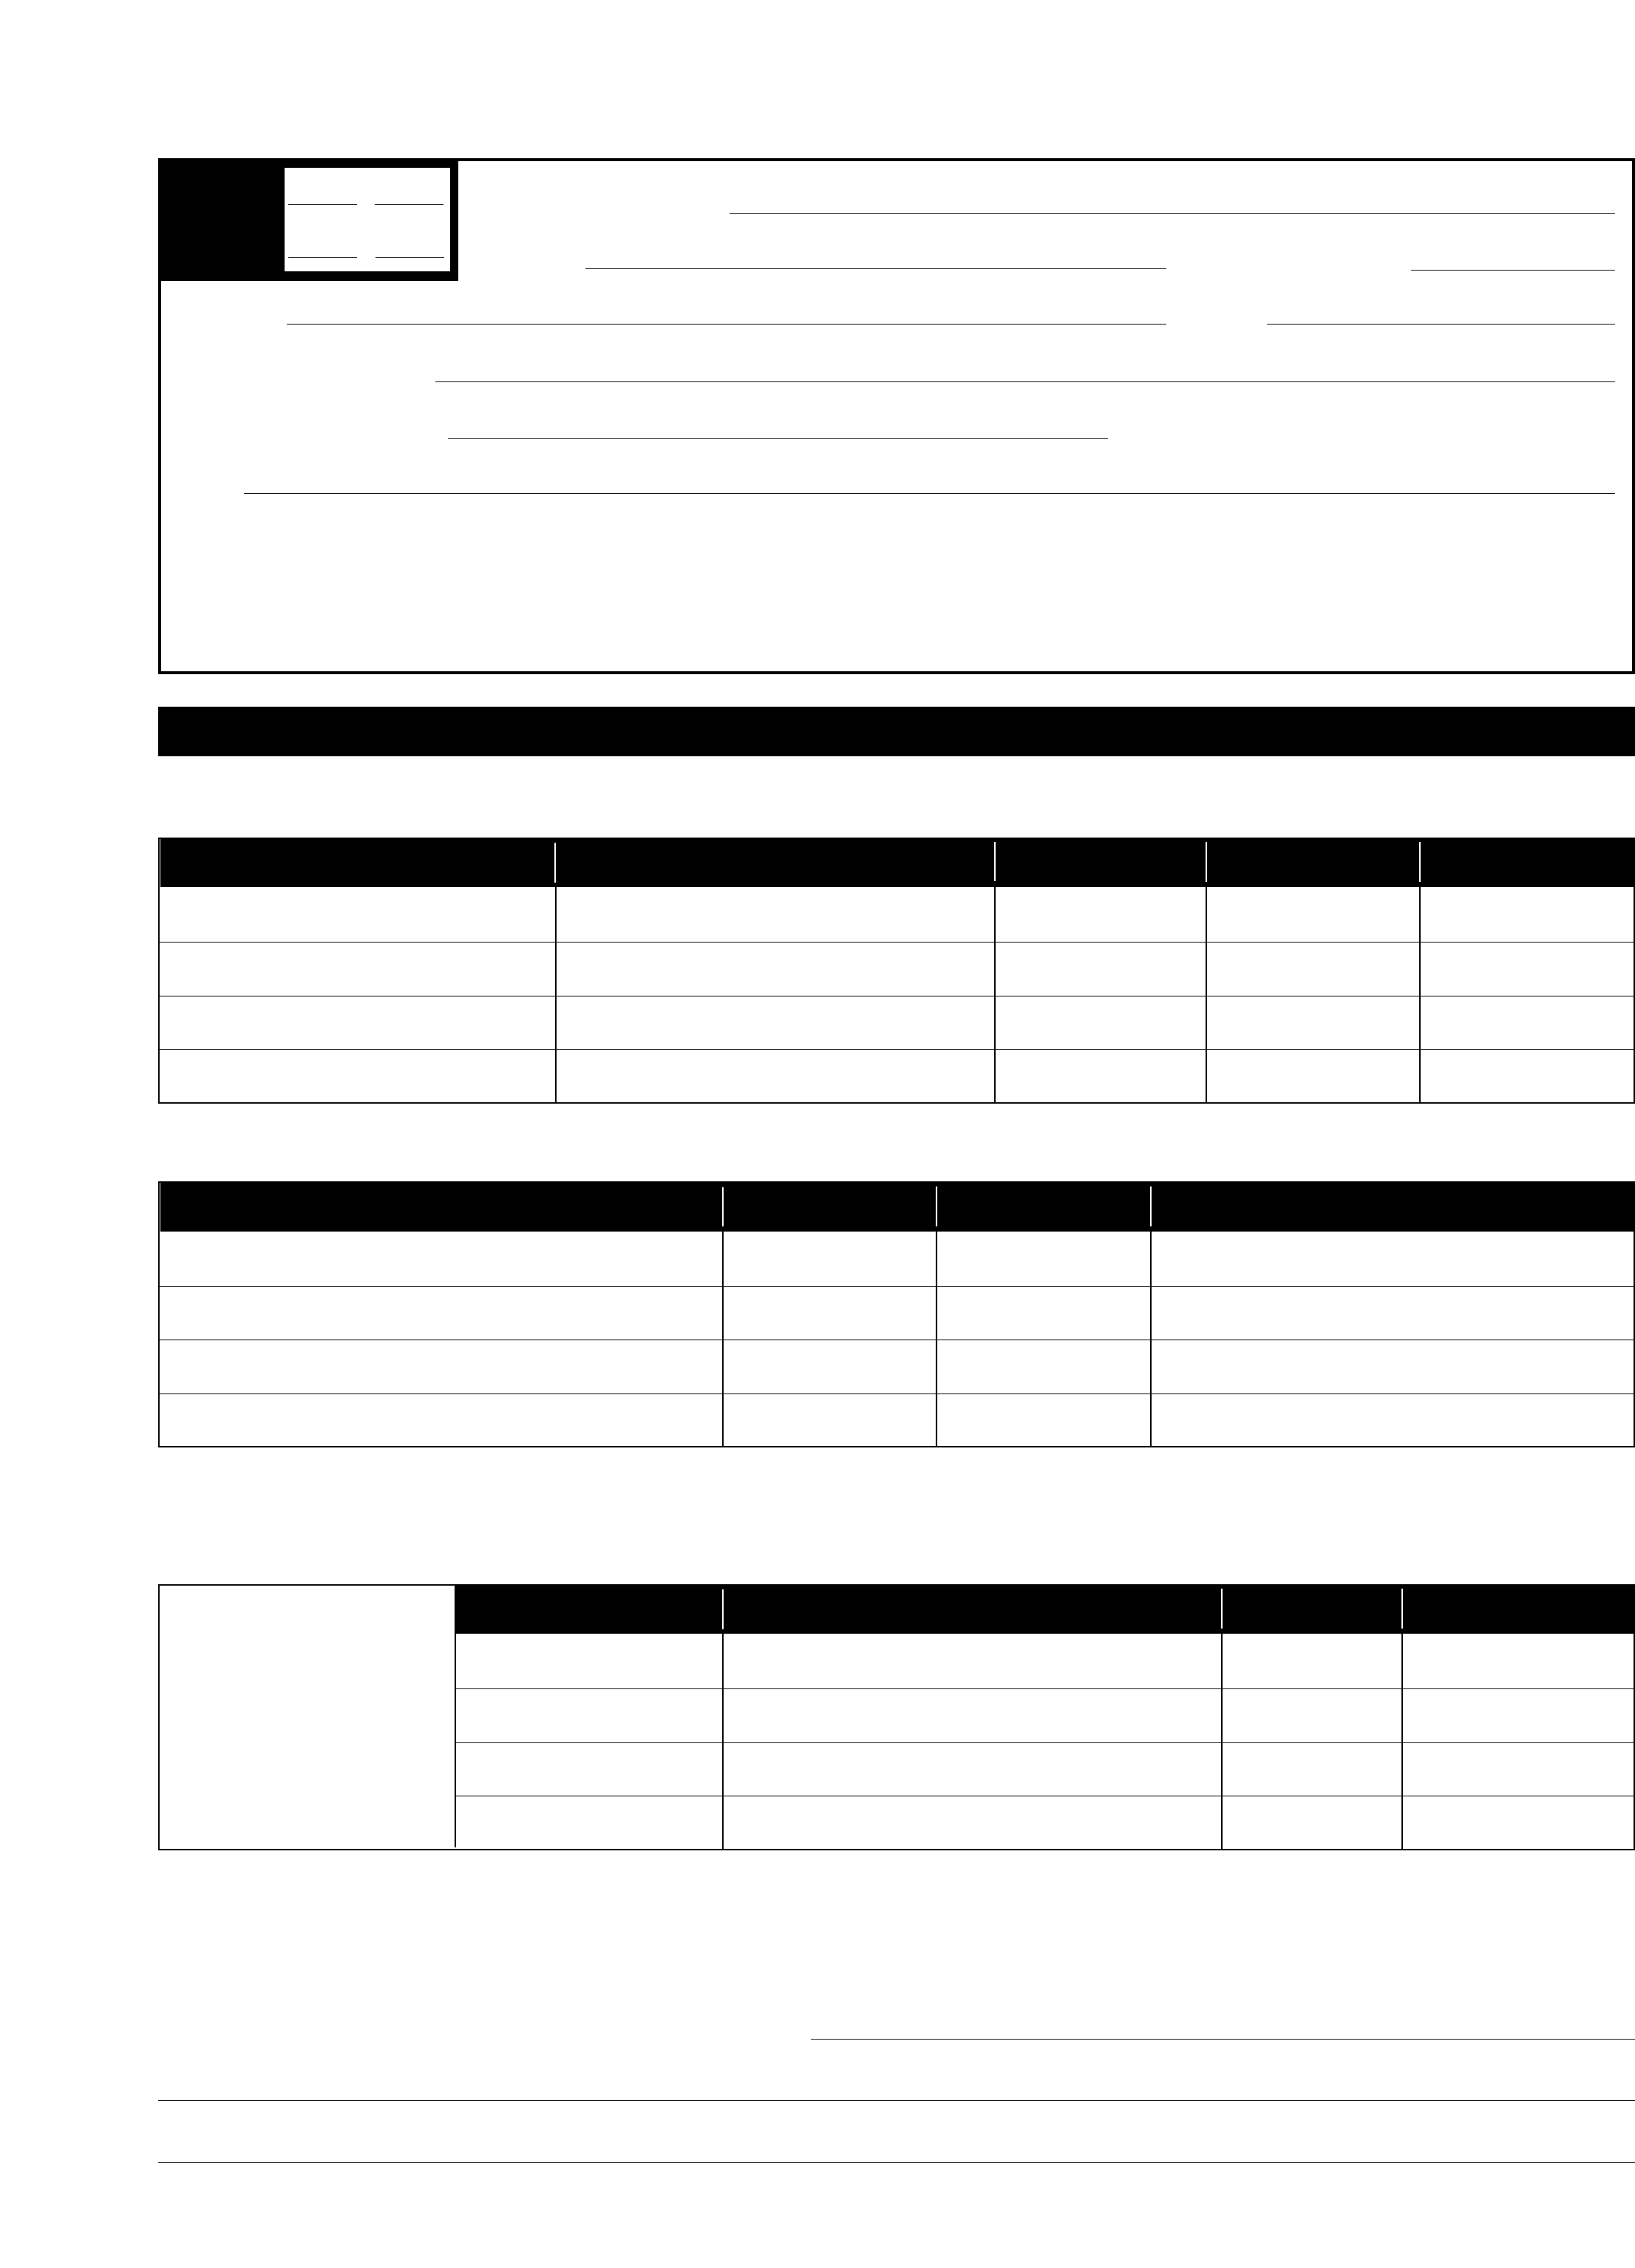 Target drivers employment application form free download falaconquin